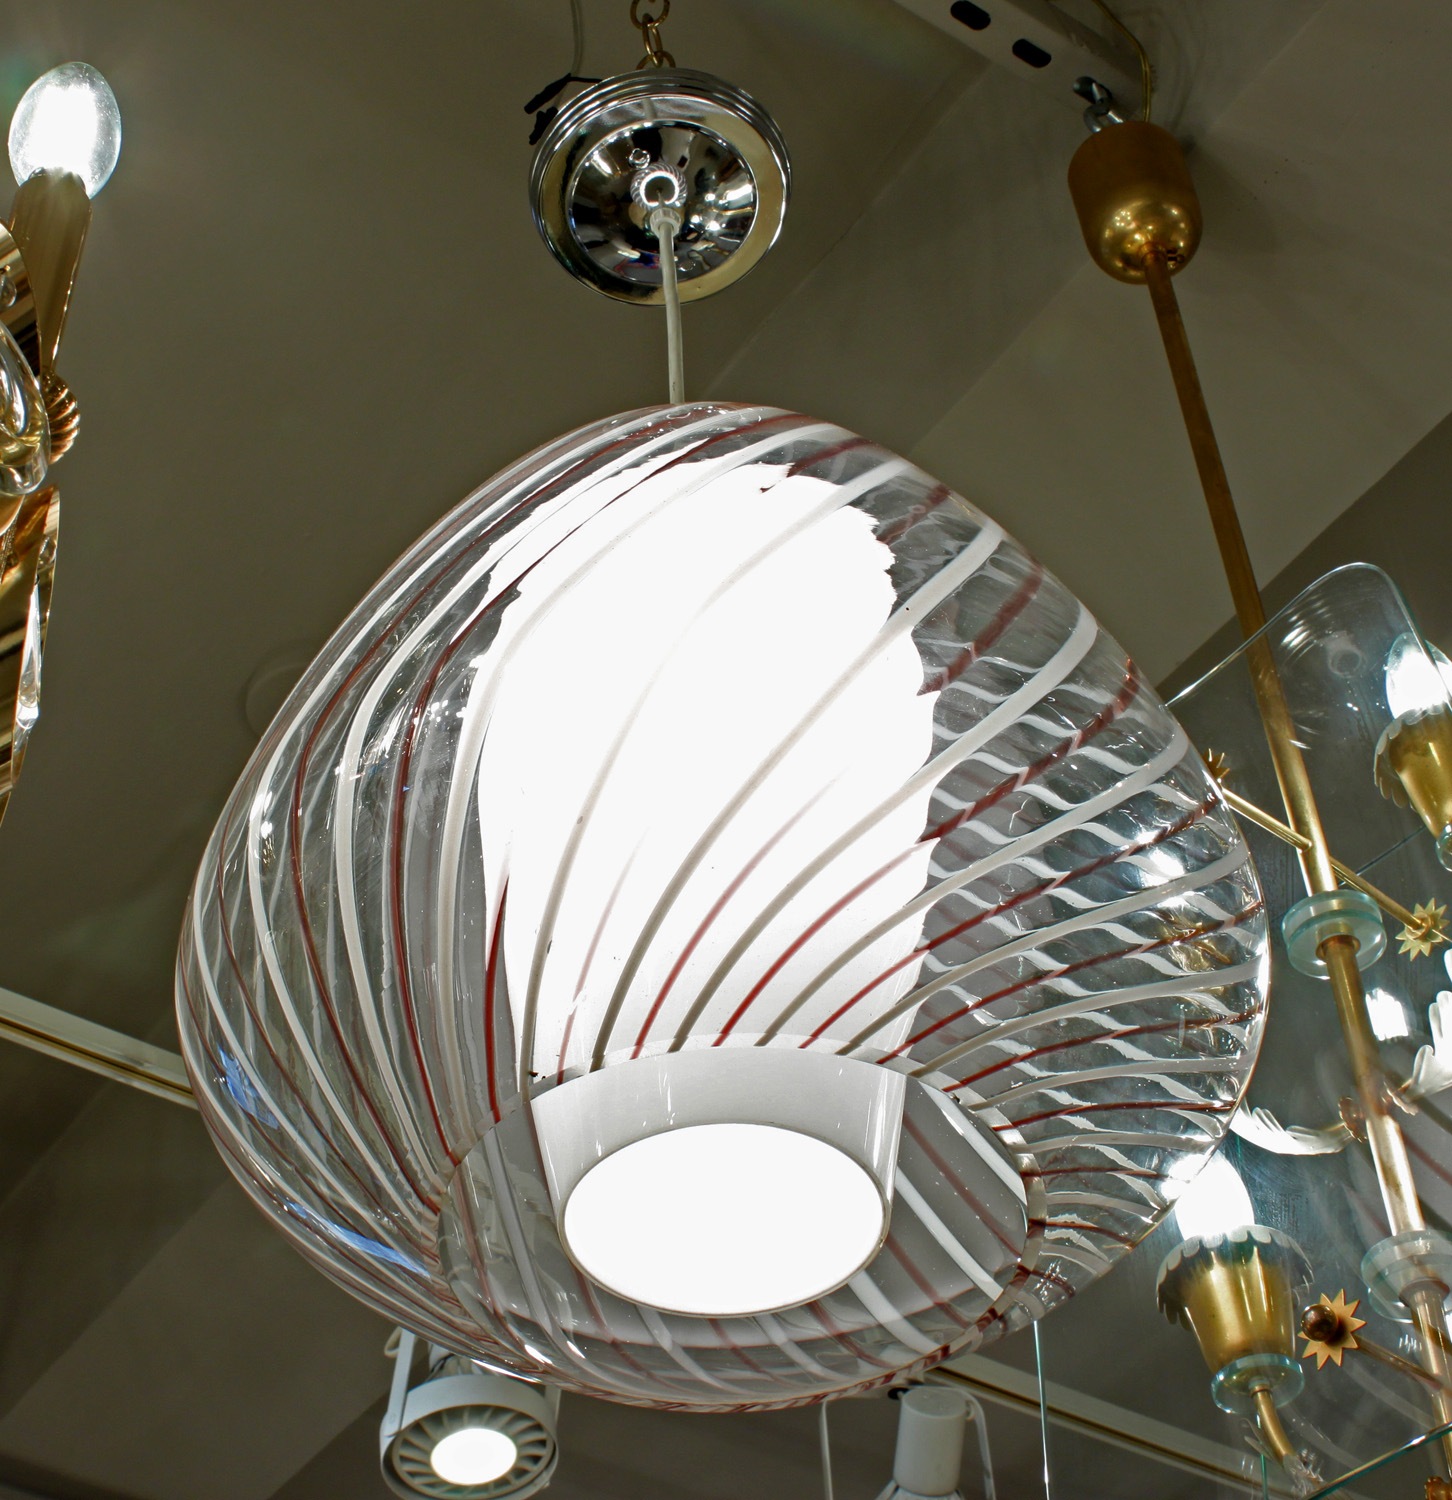 Murano 35 glass shade over cone chandelier223 detail.jpg